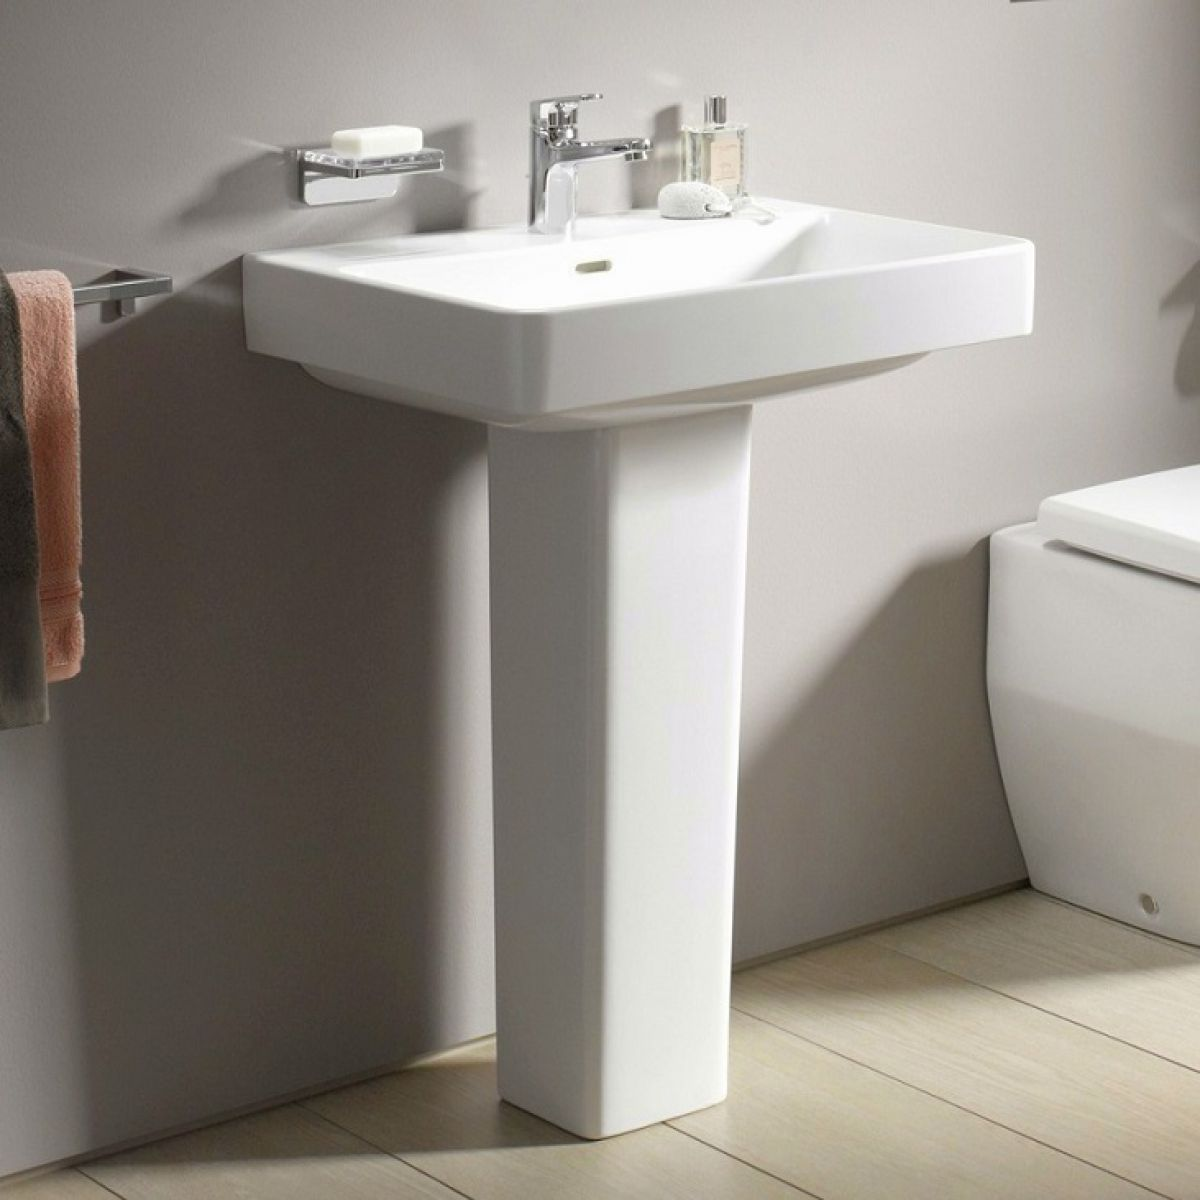 image example of a pedestal bathroom sink